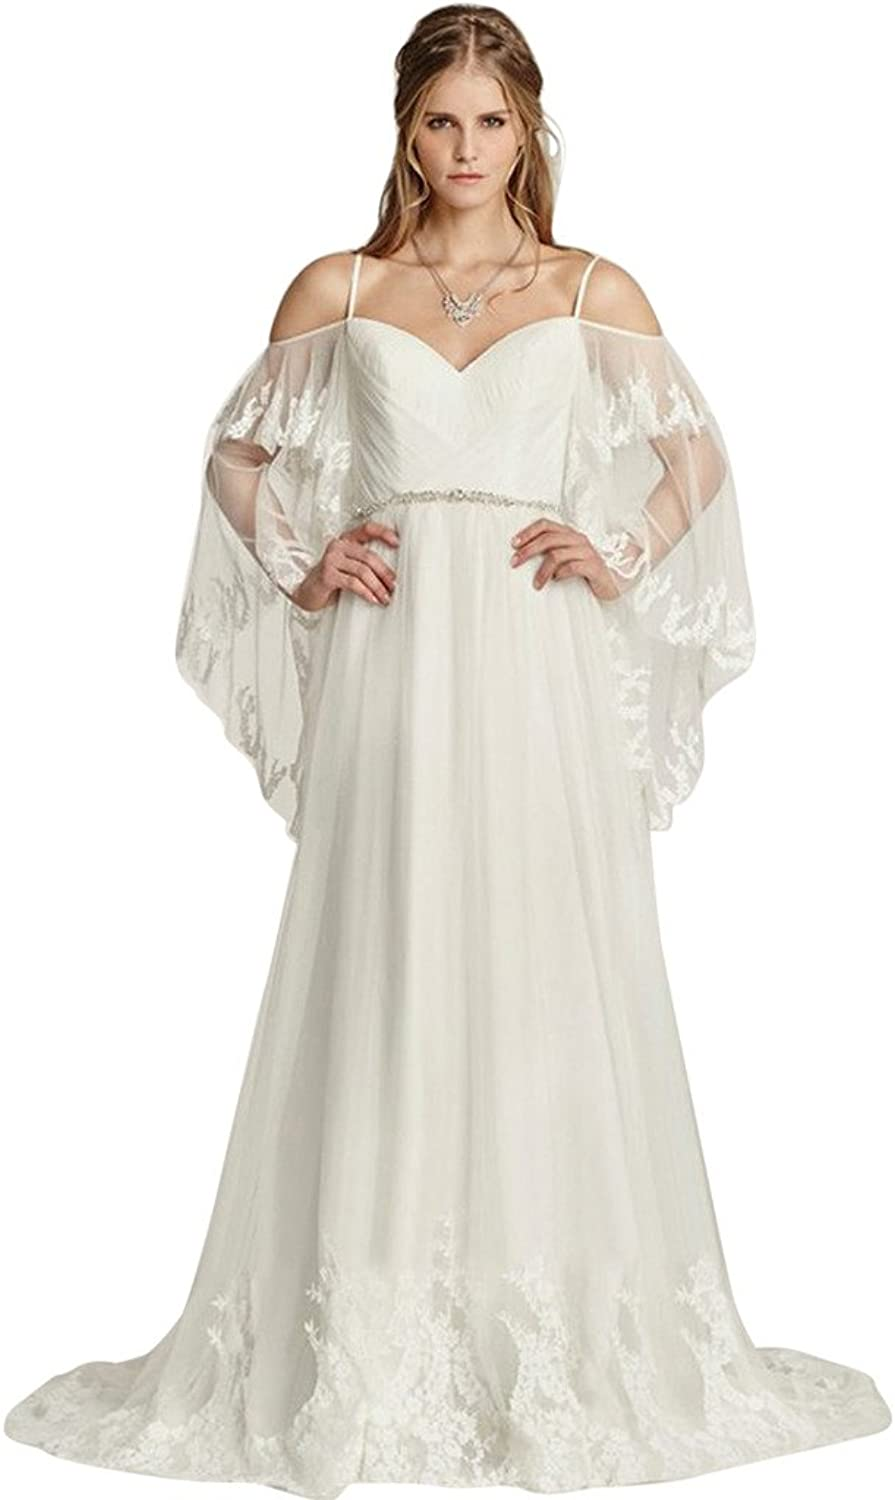 JoyVany Charming Batwing Sleeve Beach Wedding Dress Summer Sexy Lace Bride Gowns